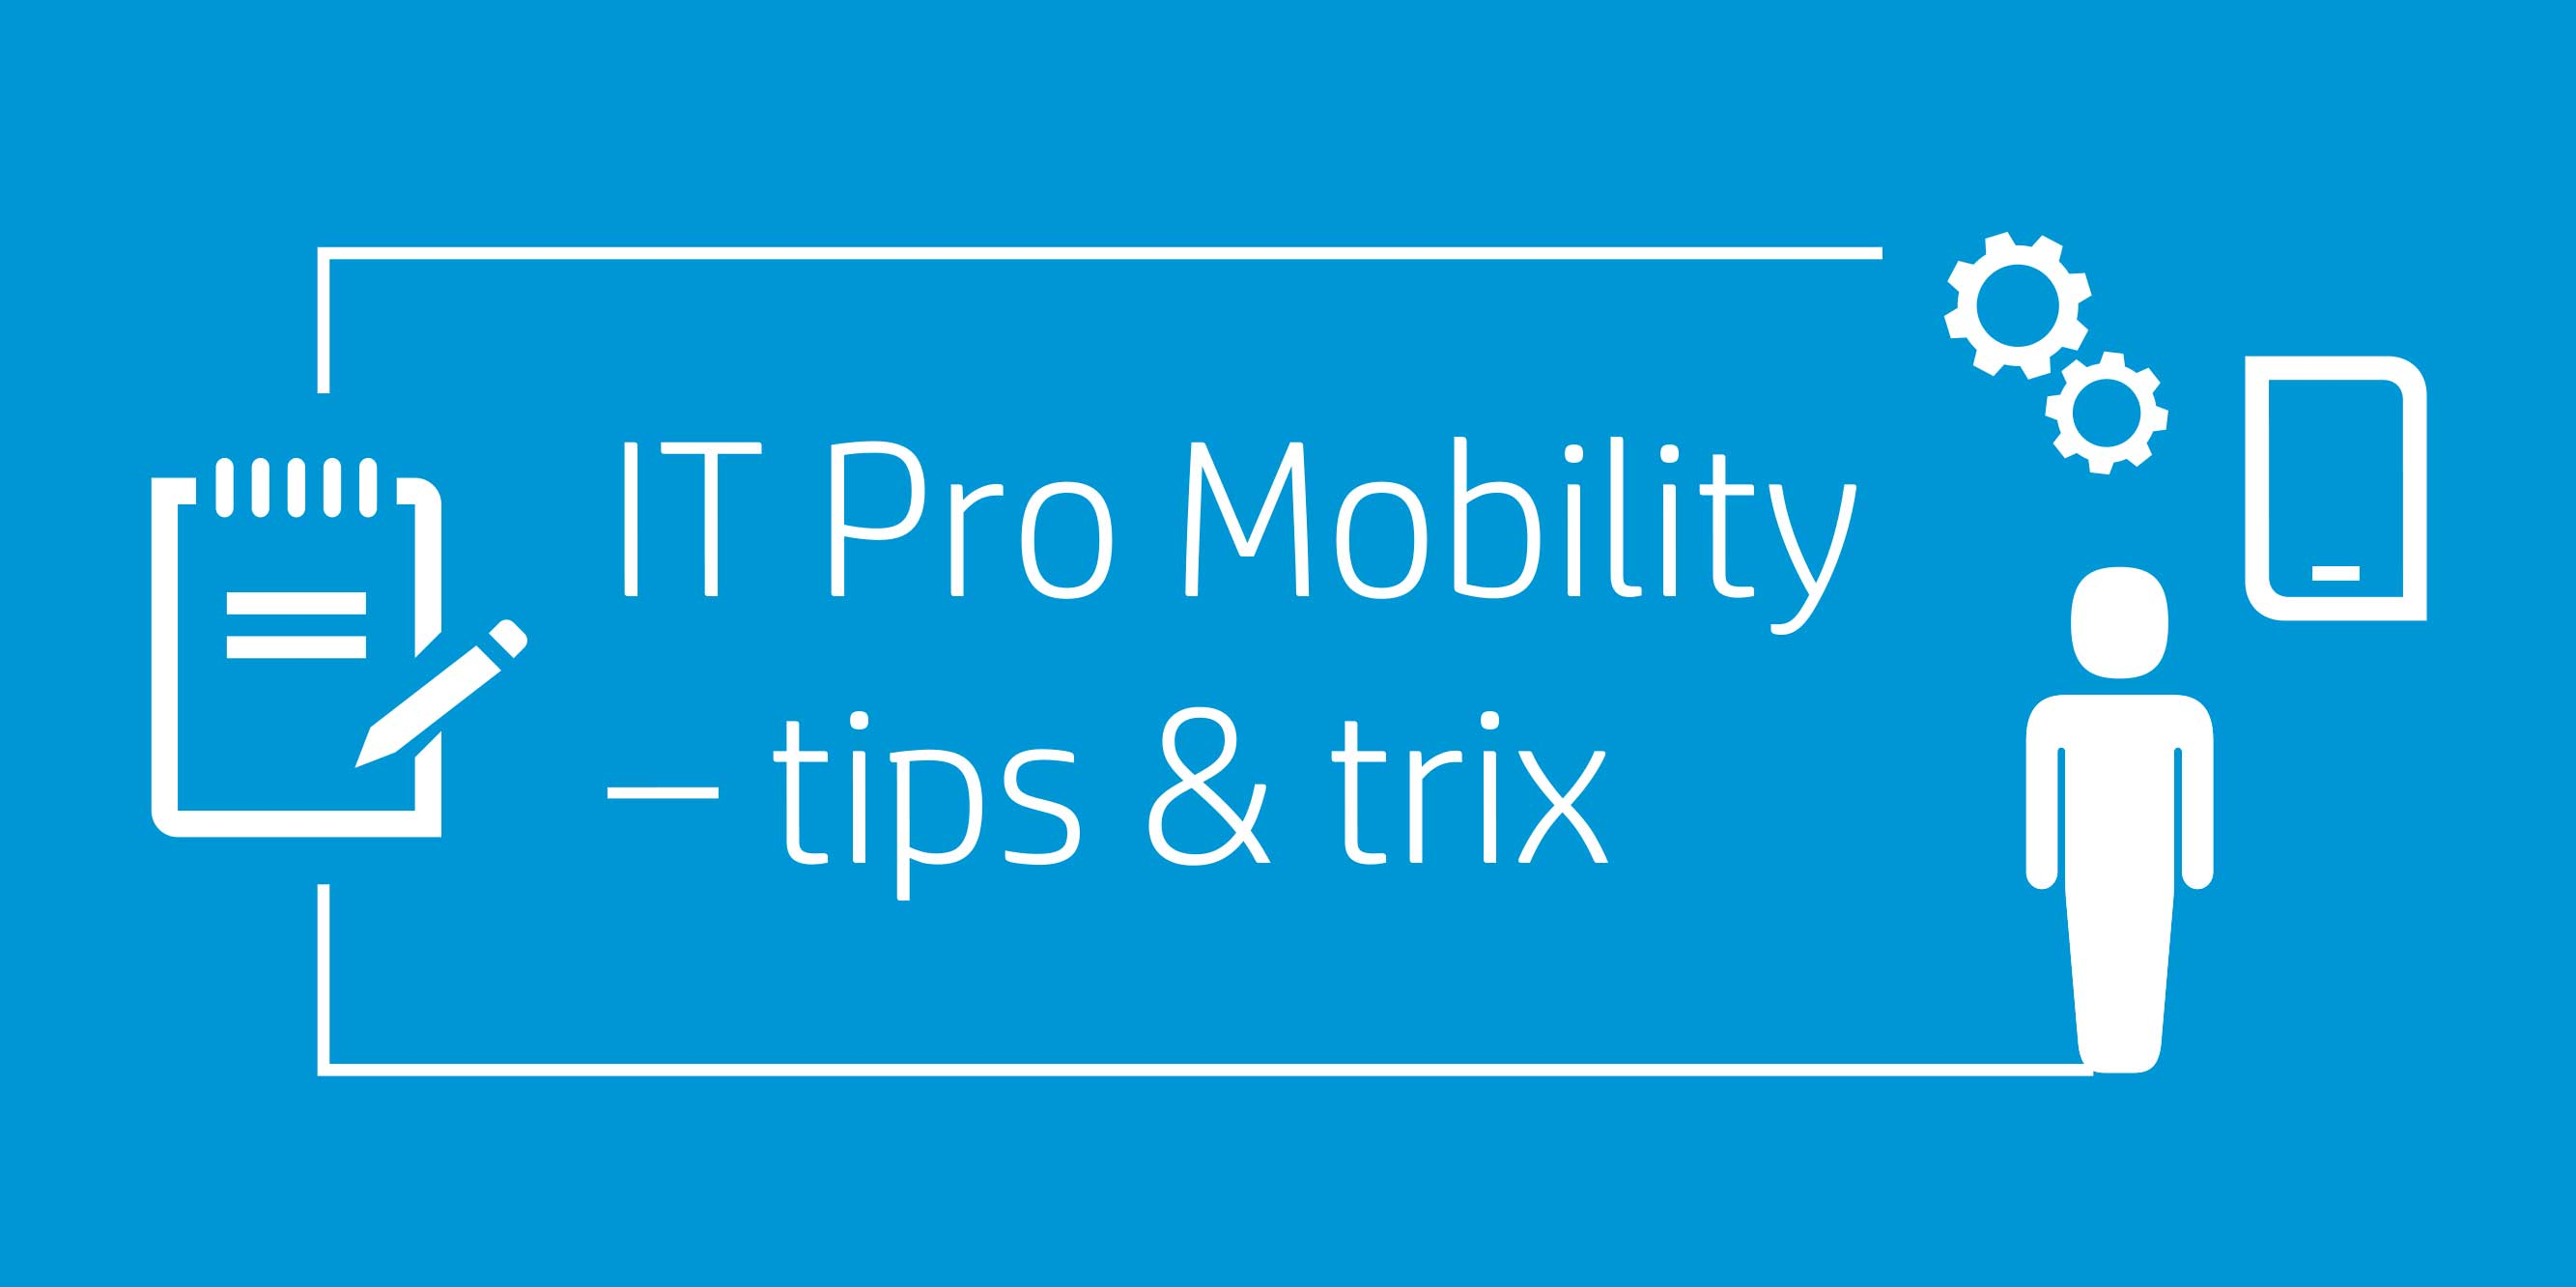 IT-Pro-Mobility-CheatSheet-header.jpg